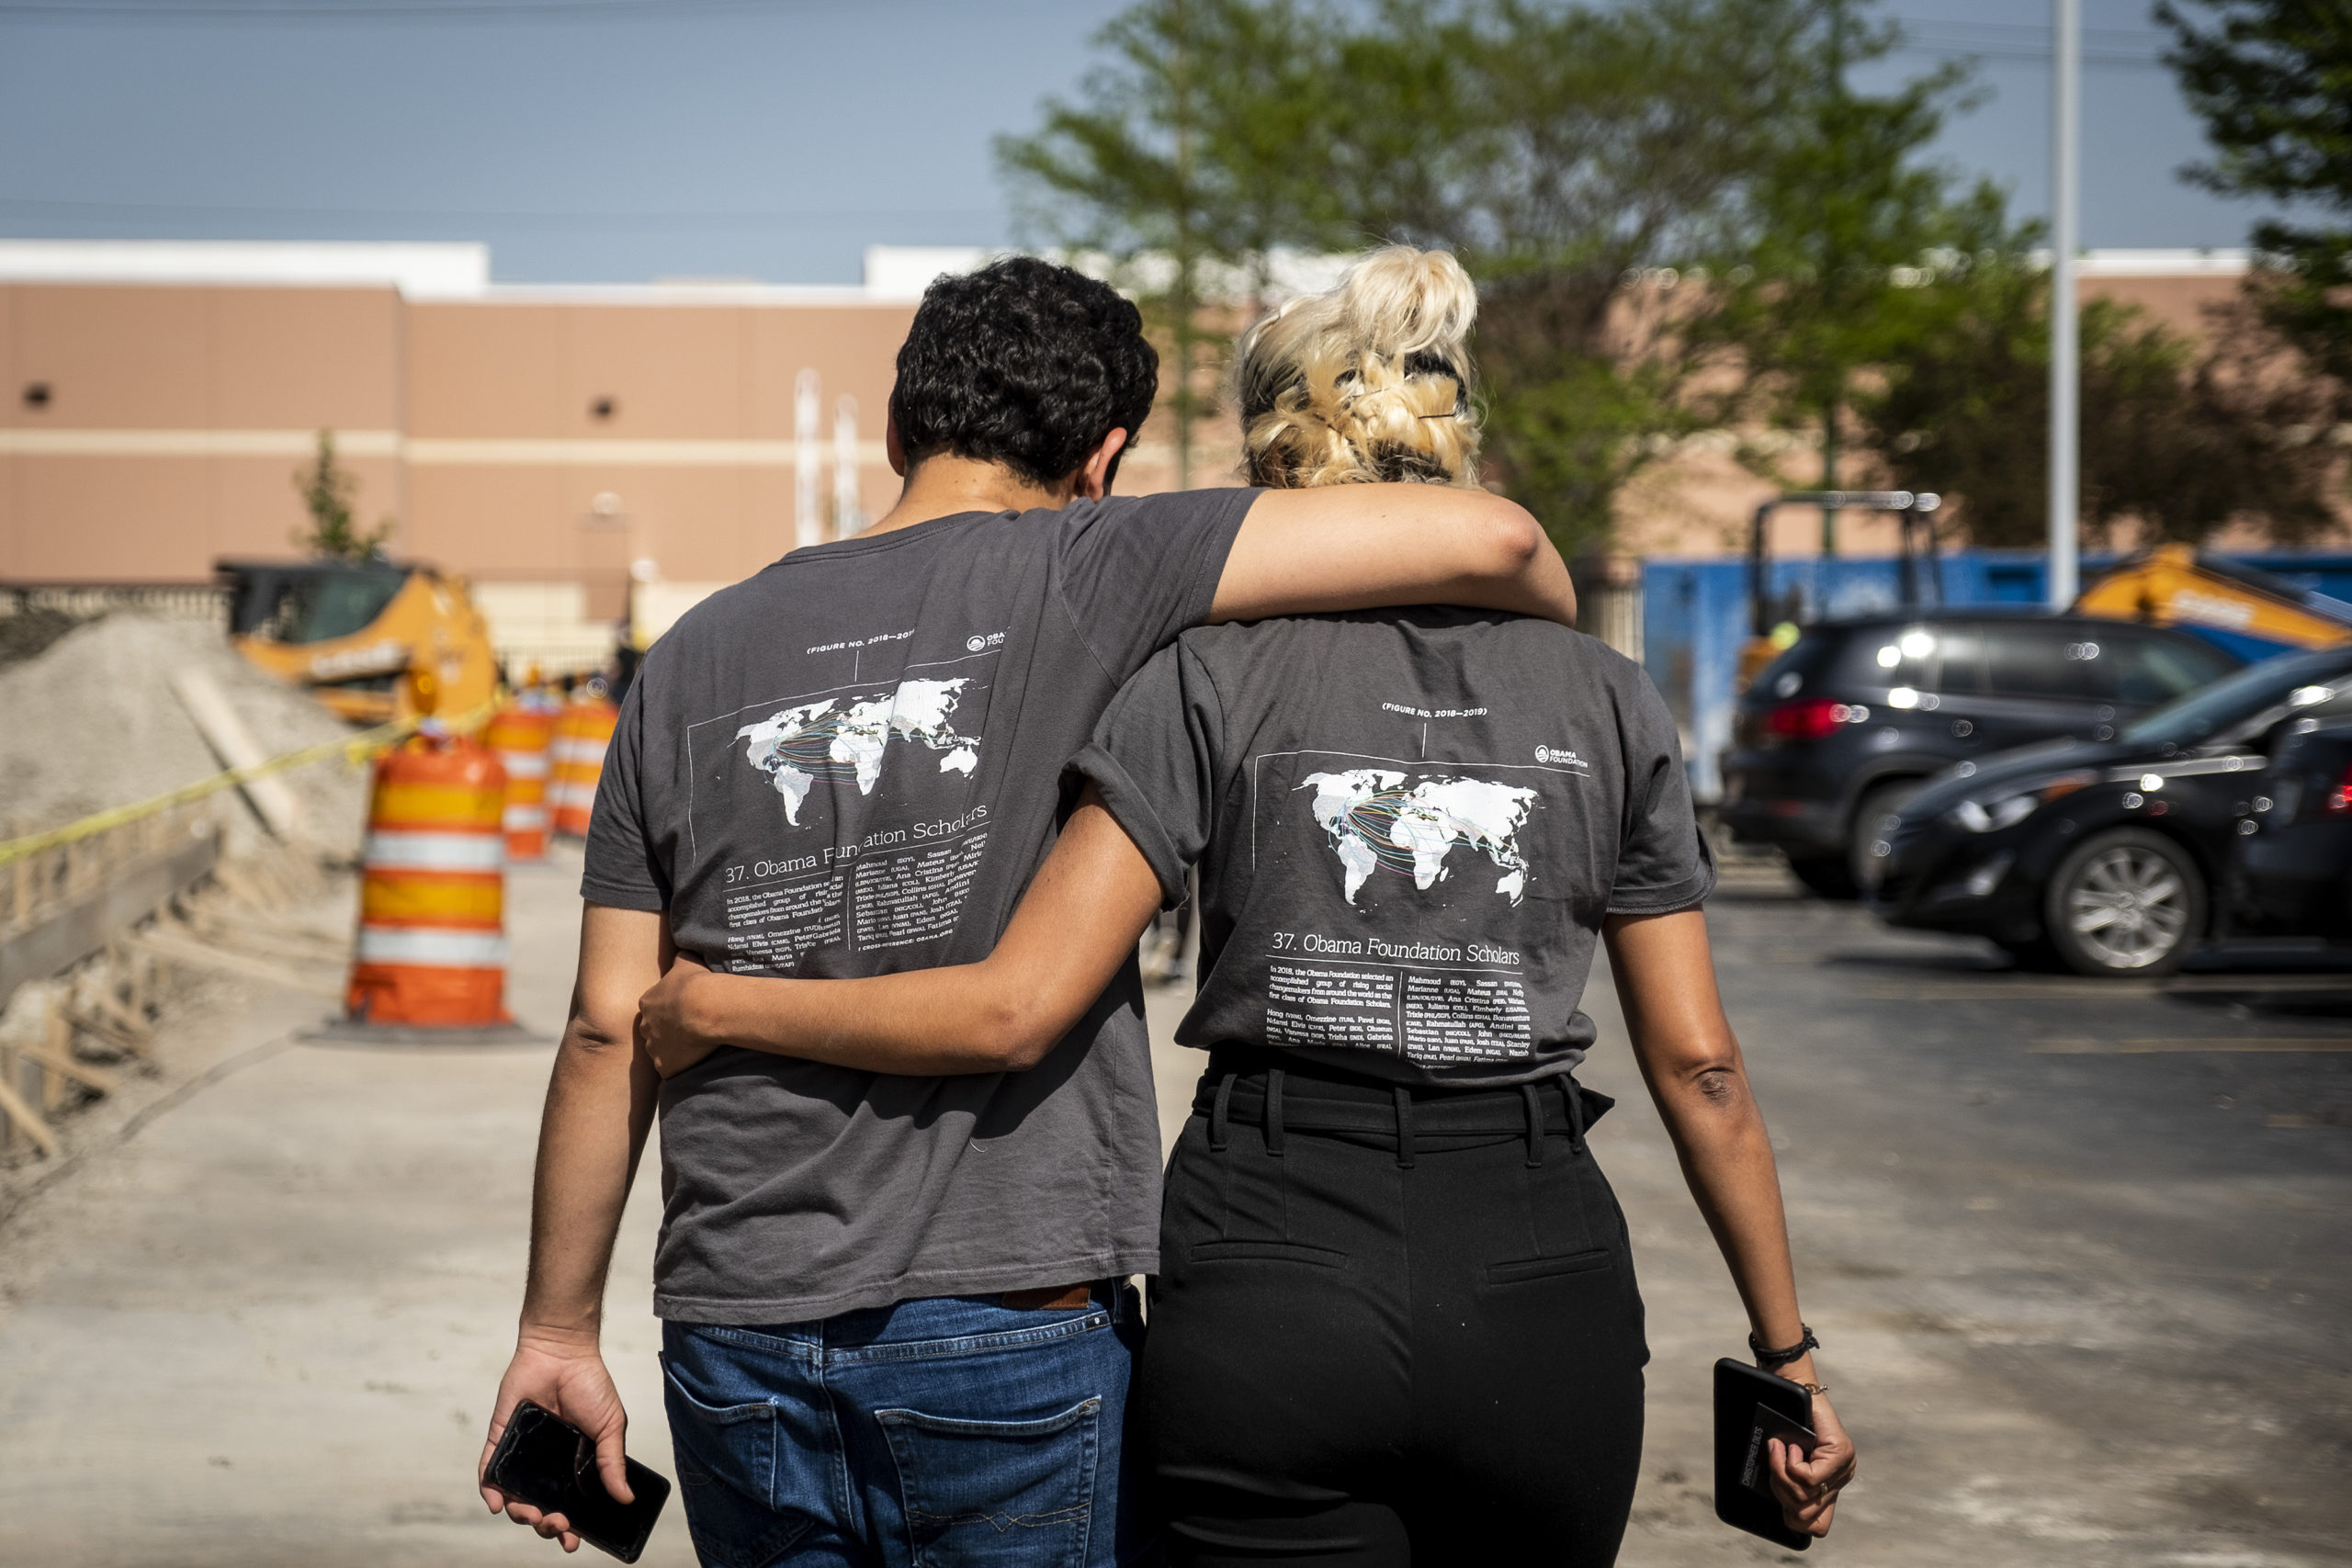 A young woman and man are photographed from behind with their arms around each other in a display of friendship.